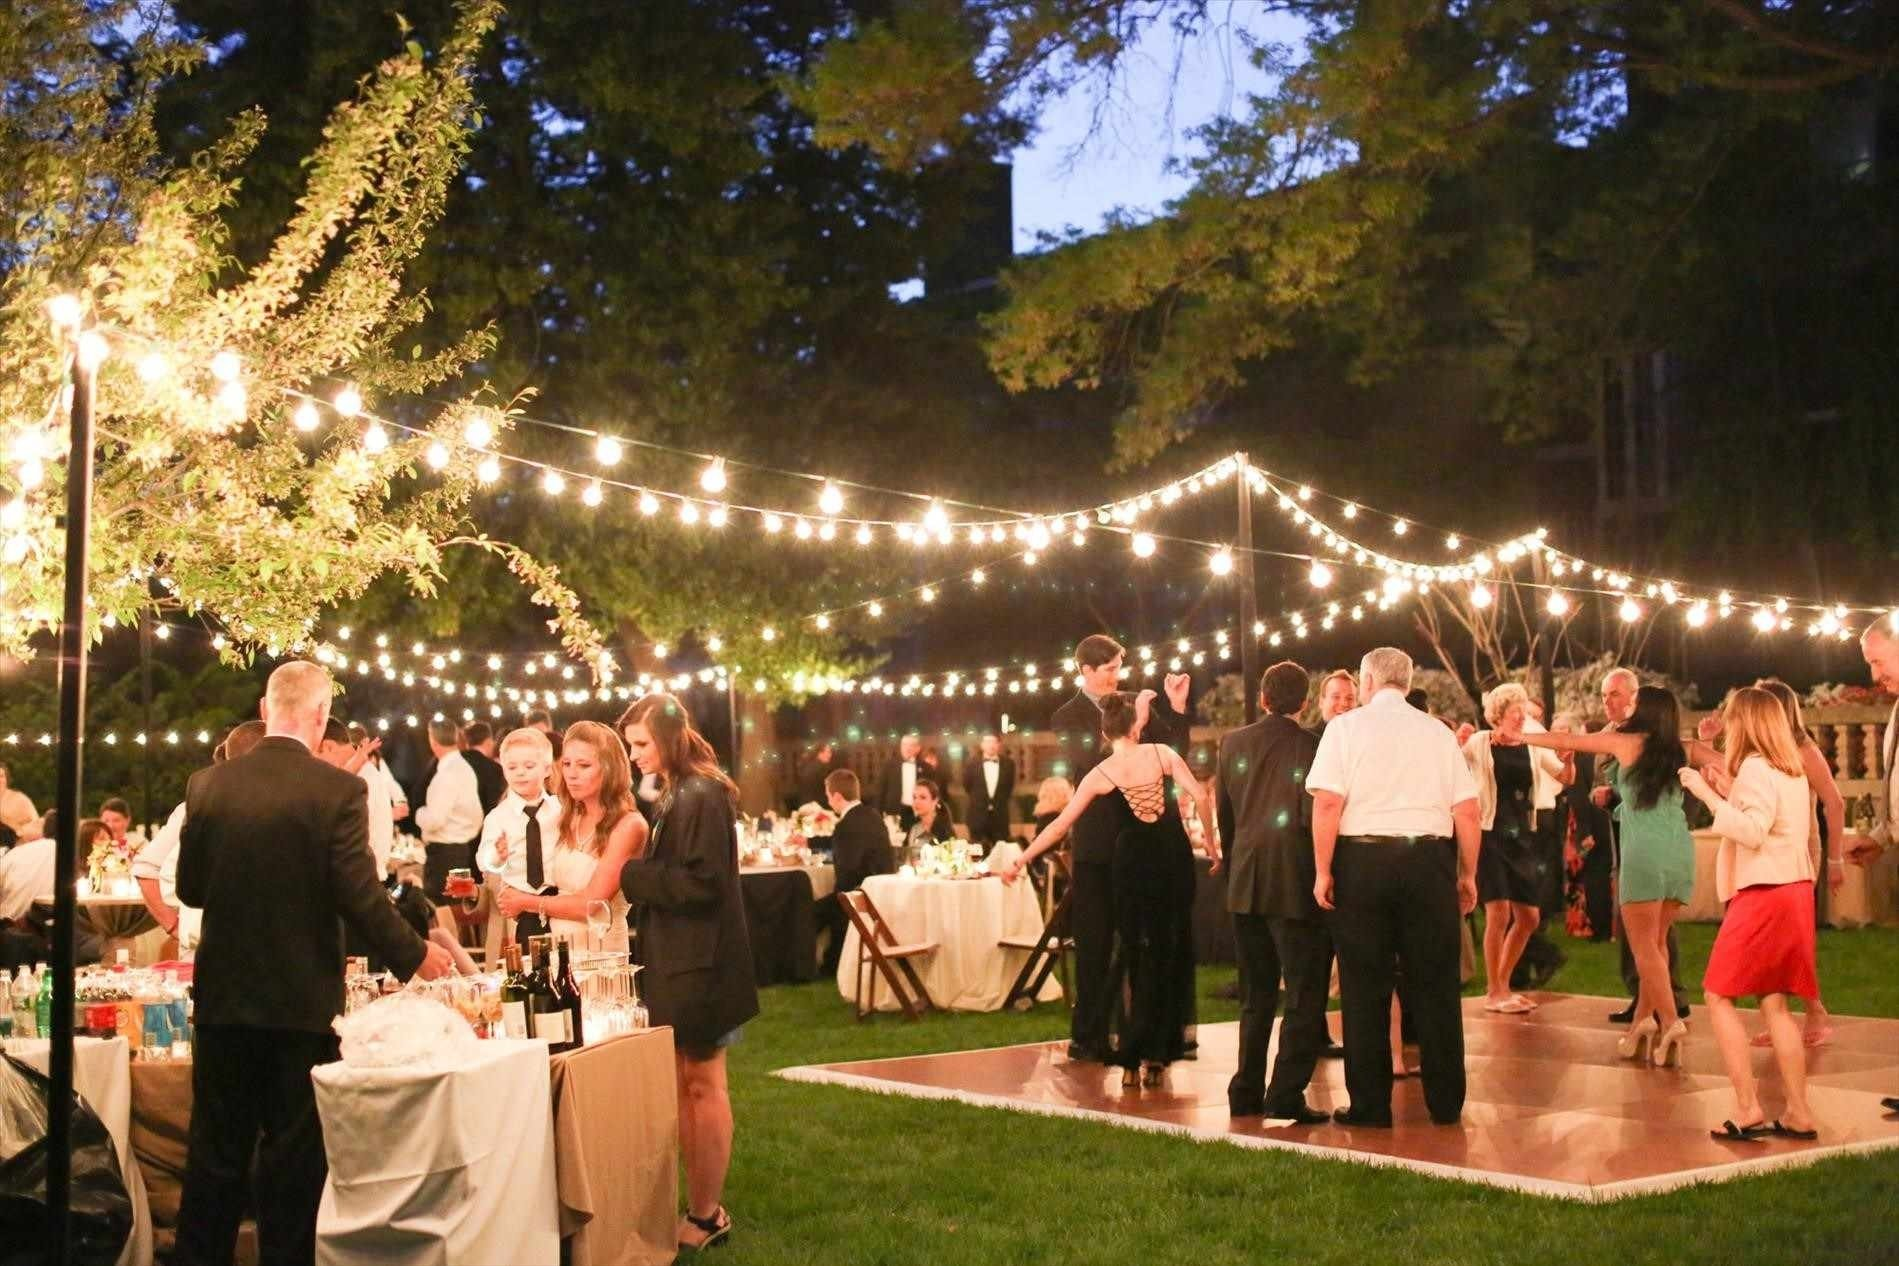 10 Attractive Outdoor Wedding Ideas For Spring outdoor wedding ideas outdoor country wedding venues best ideas 2020